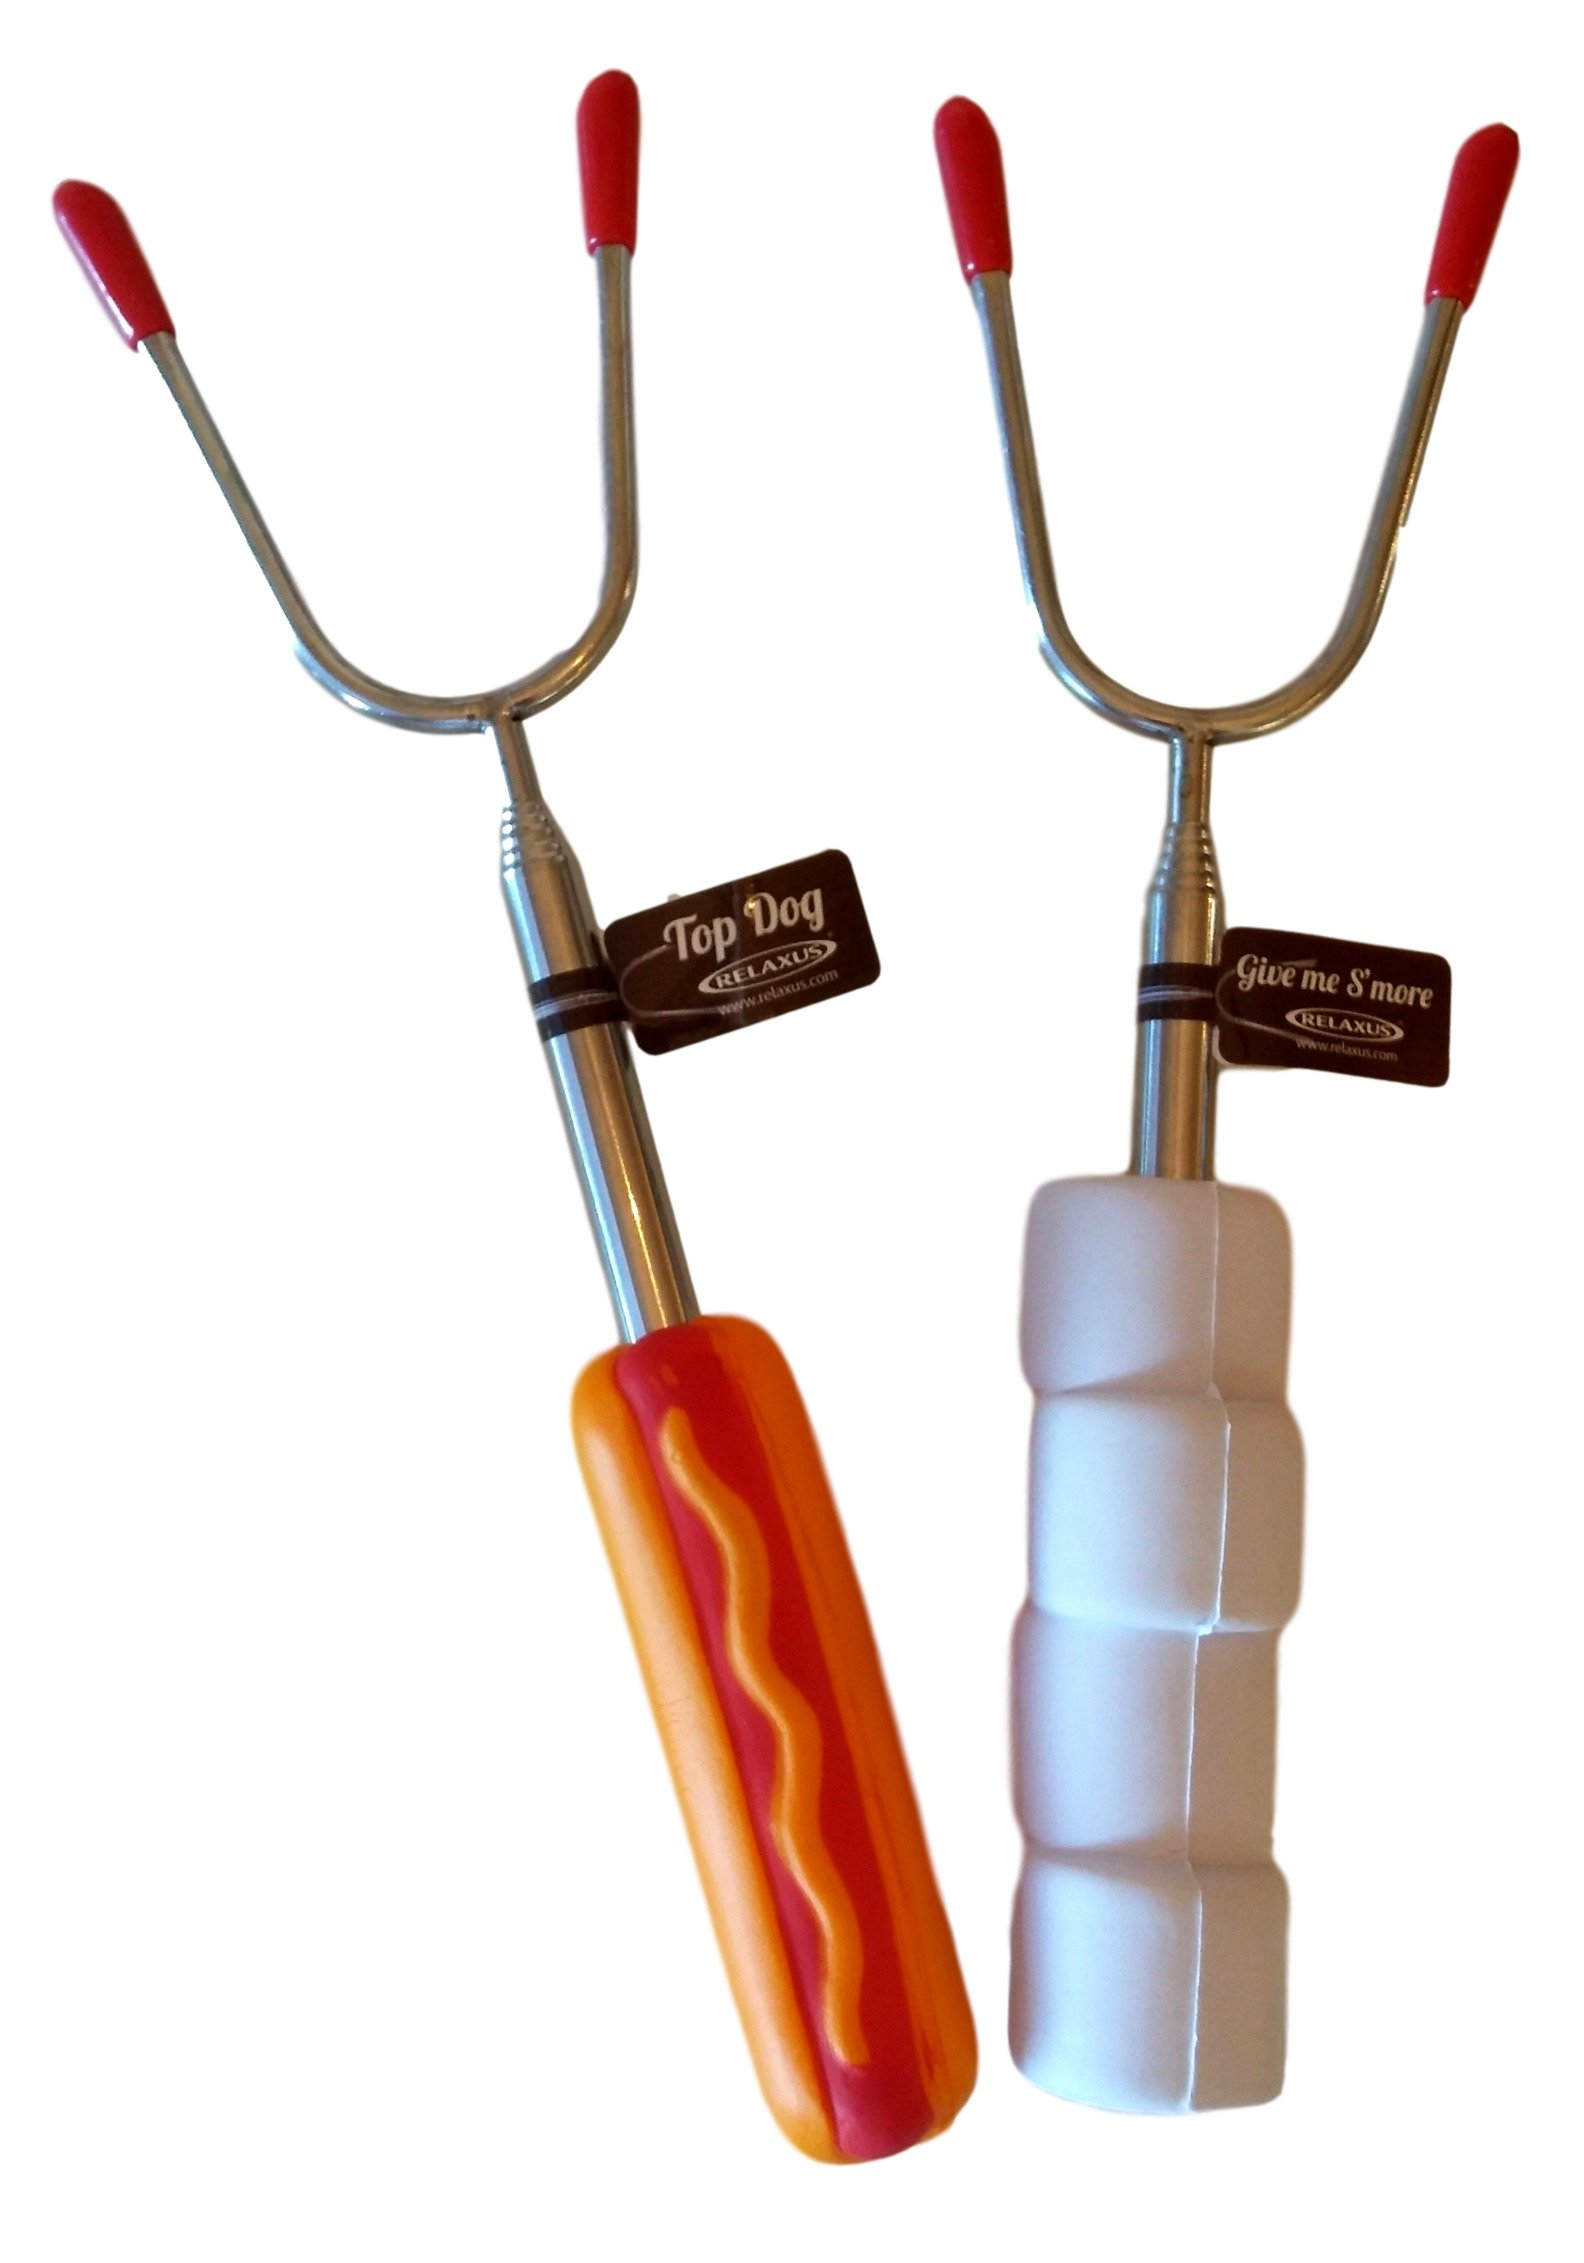 Relaxus Fun Forks, Extendable Bbq / Campfire Forks. 10'' - 34''. 2 forks